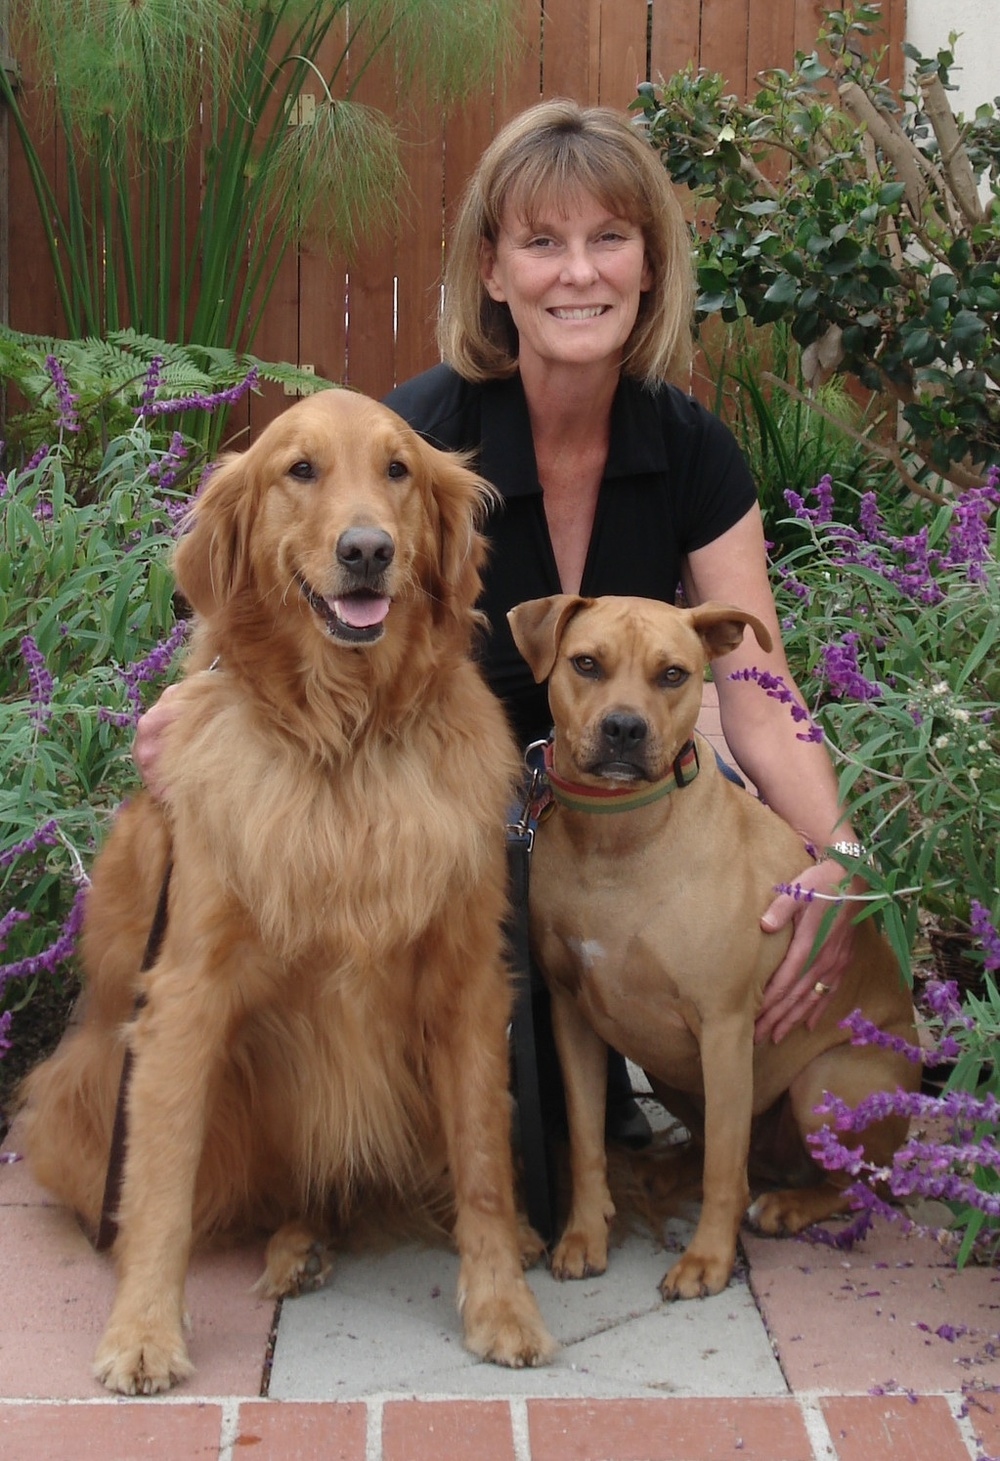 Betsy Calkins manhattan beach pit bull dog trainer, golden retriever dog trainer